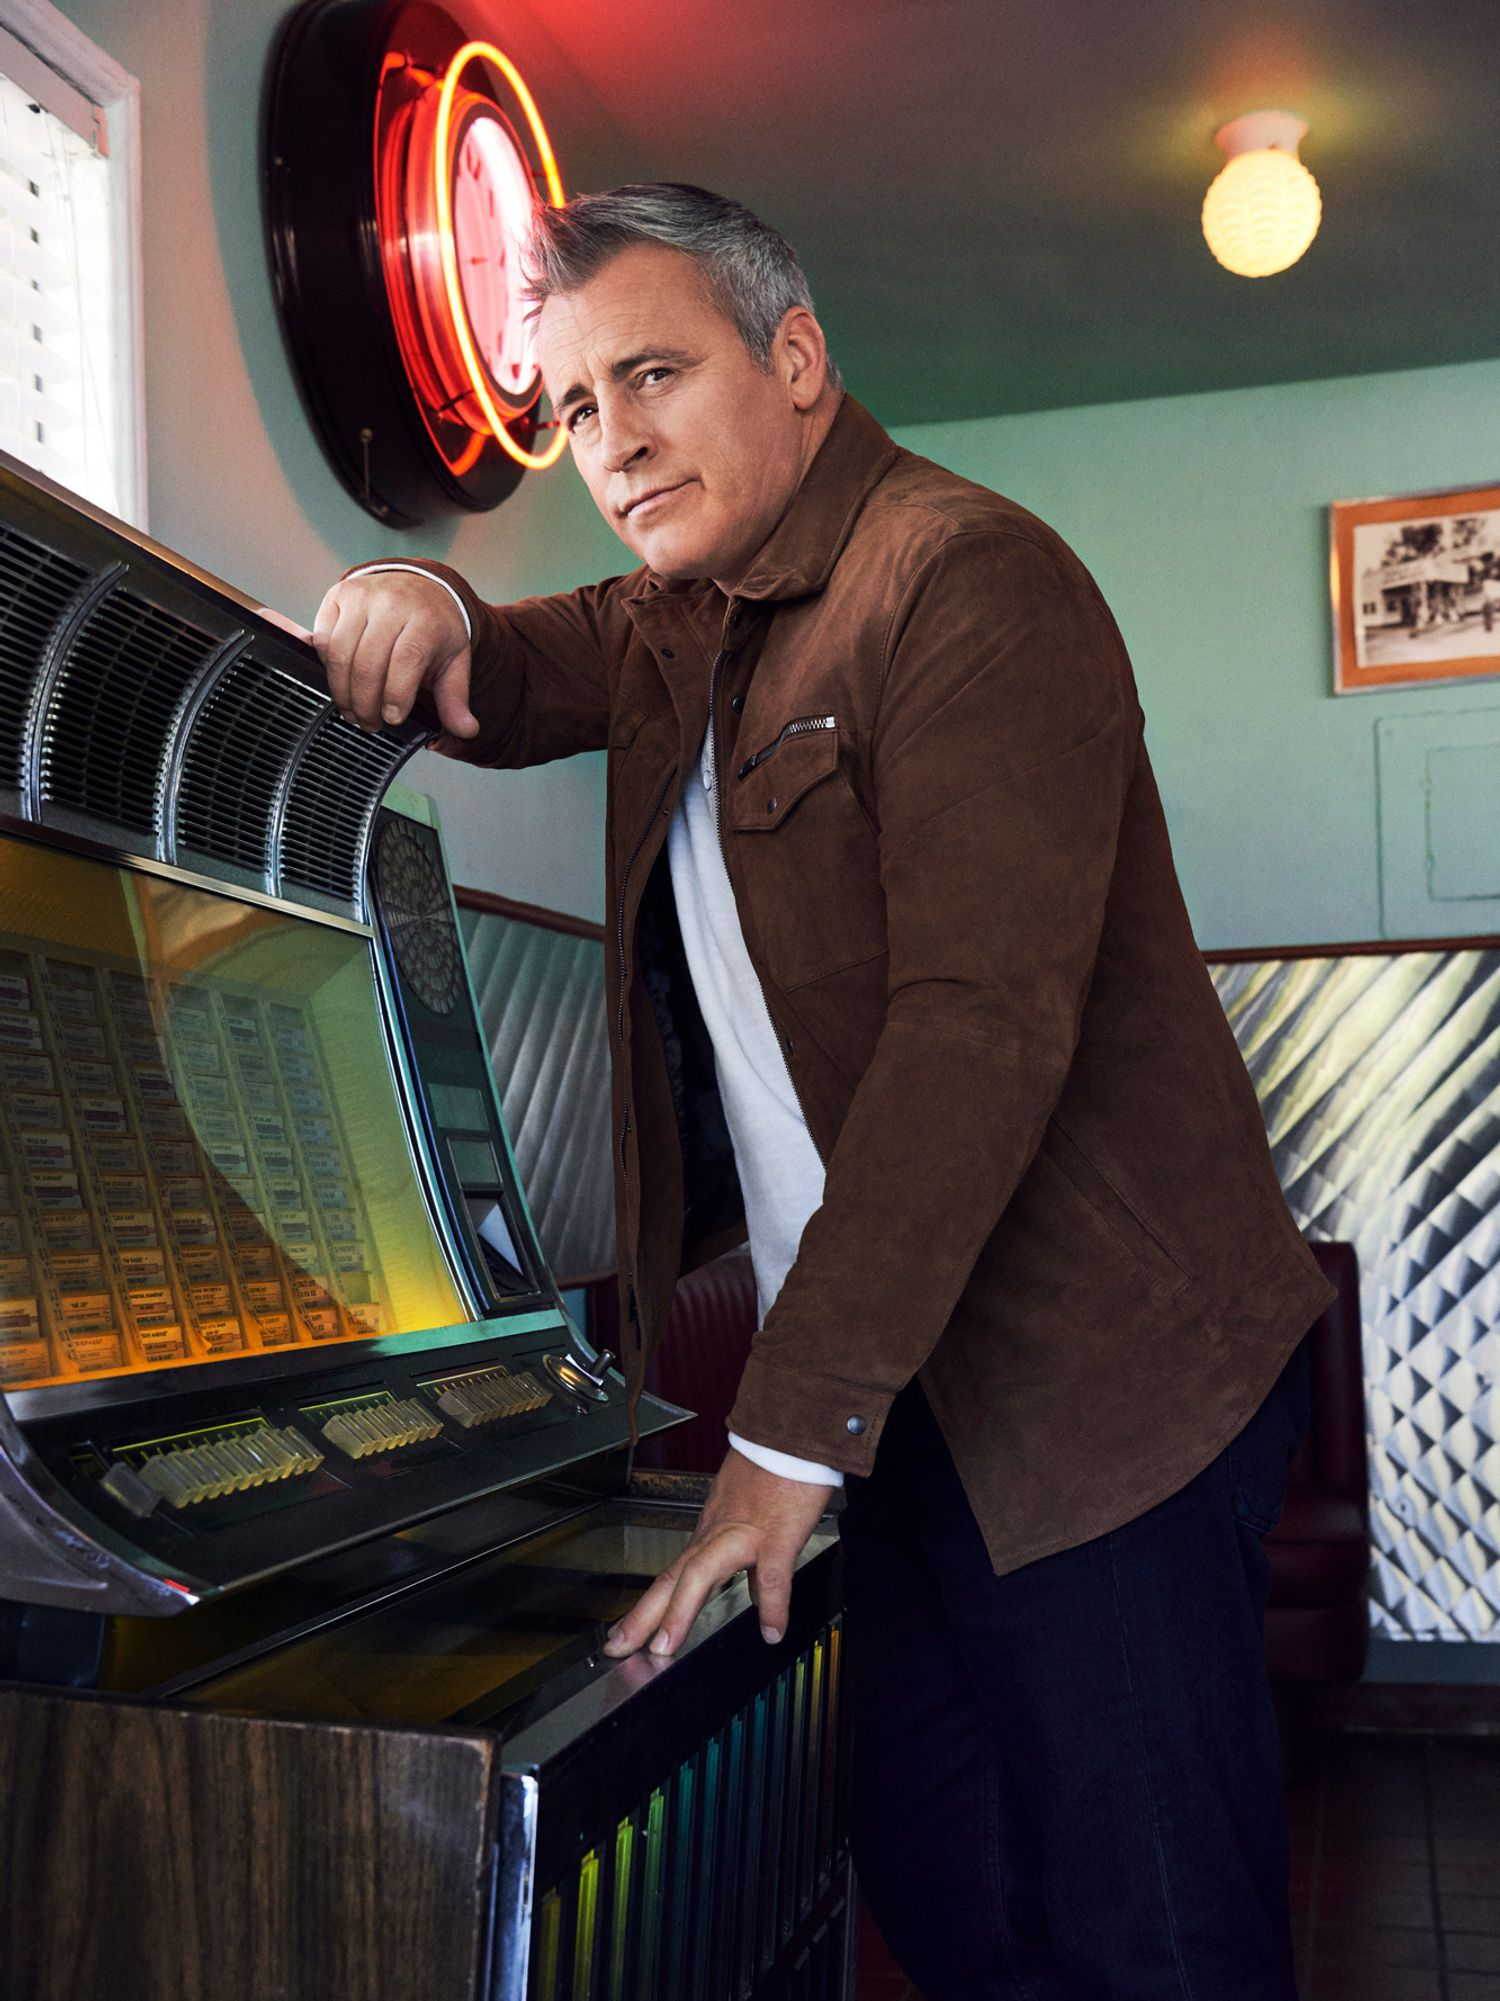 Actor Matt LeBlanc standing at a vintage juke box.